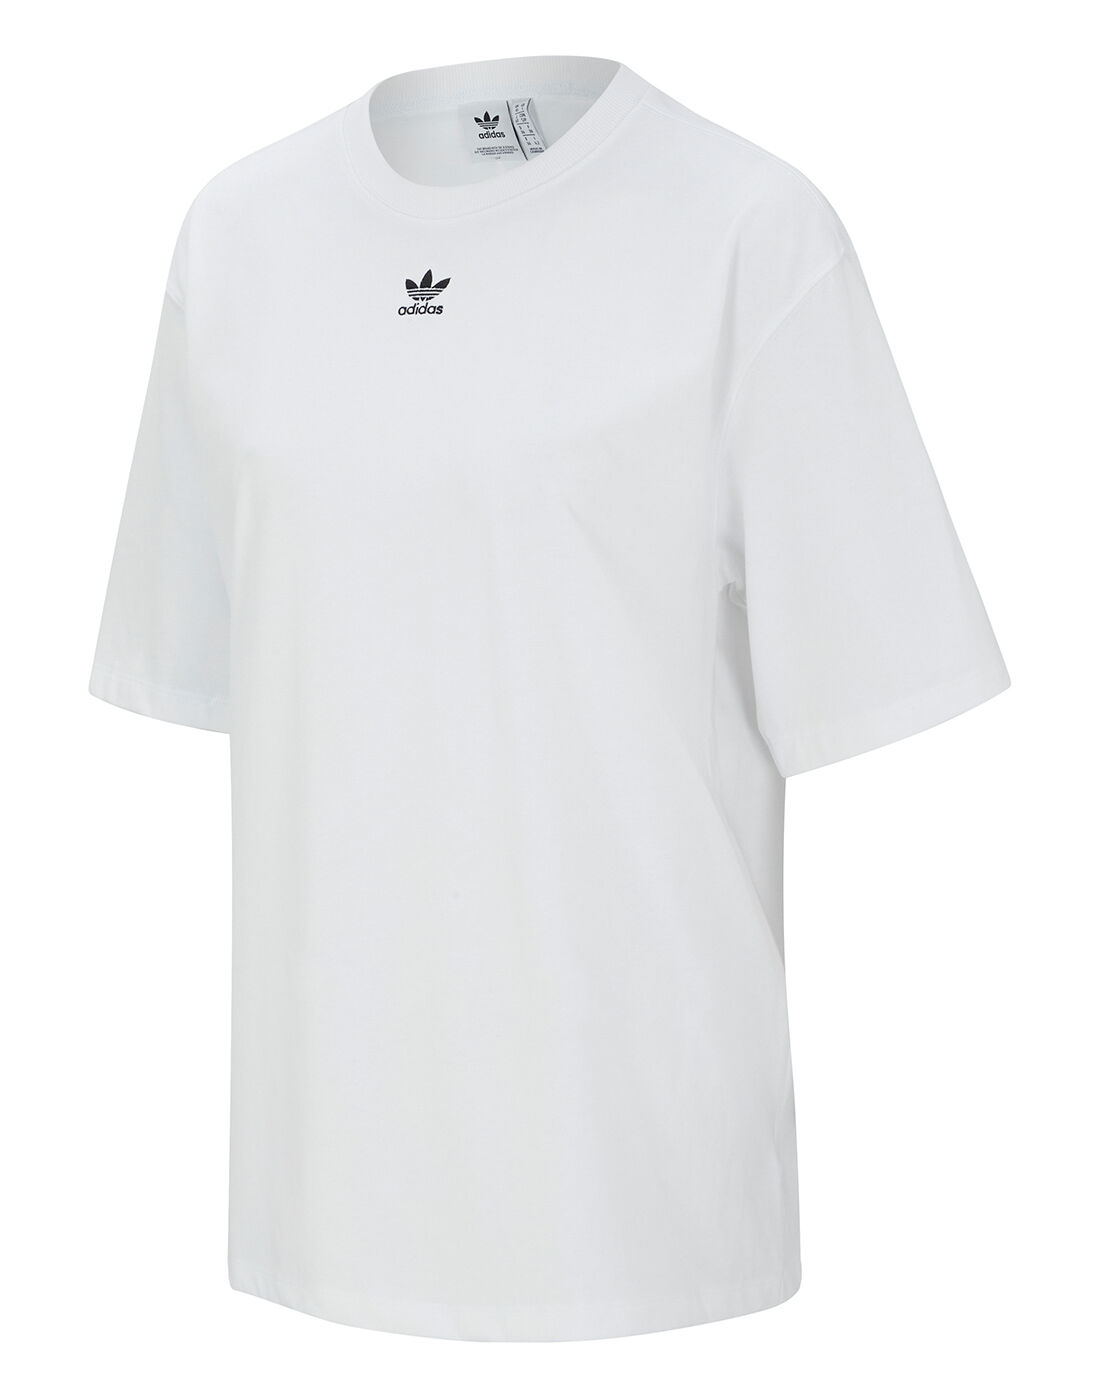 adidas Originals nike lebron x gs elite water filter parts for sale | Womens T-shirt